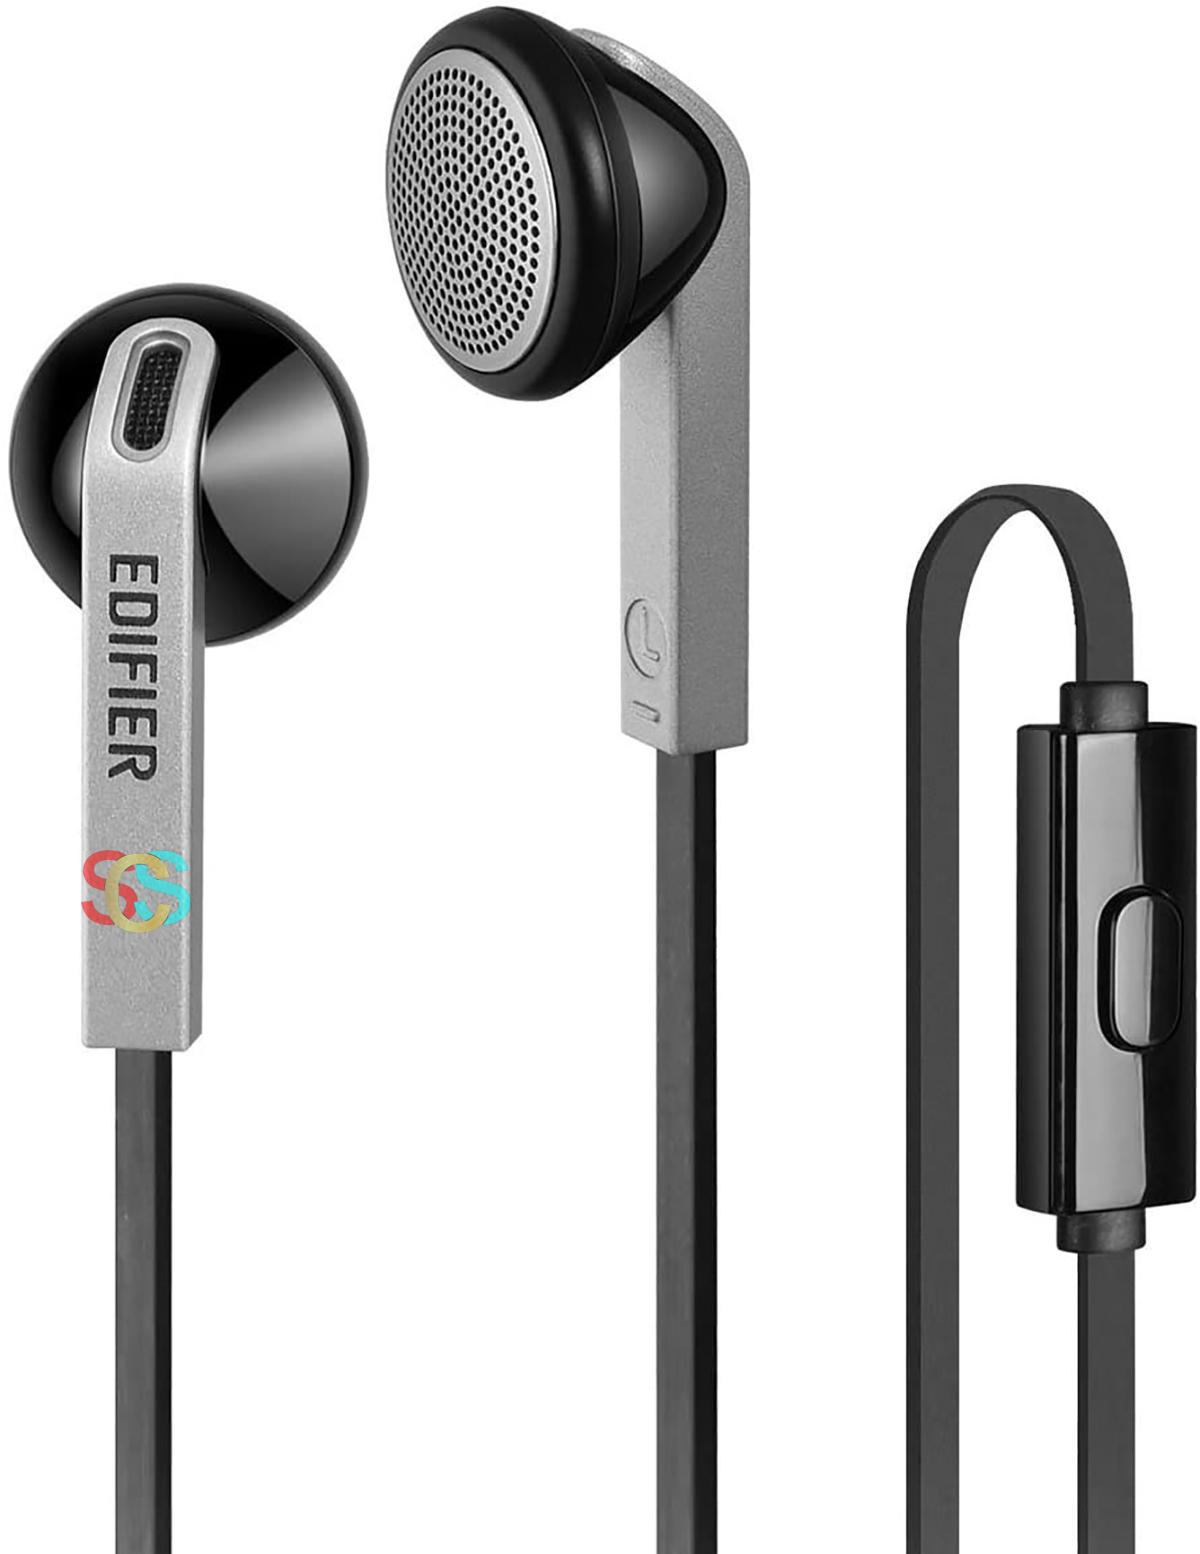 Edifier H190 Hi-Fi Sound Comfortable Fit Wired Black Silver Earphones